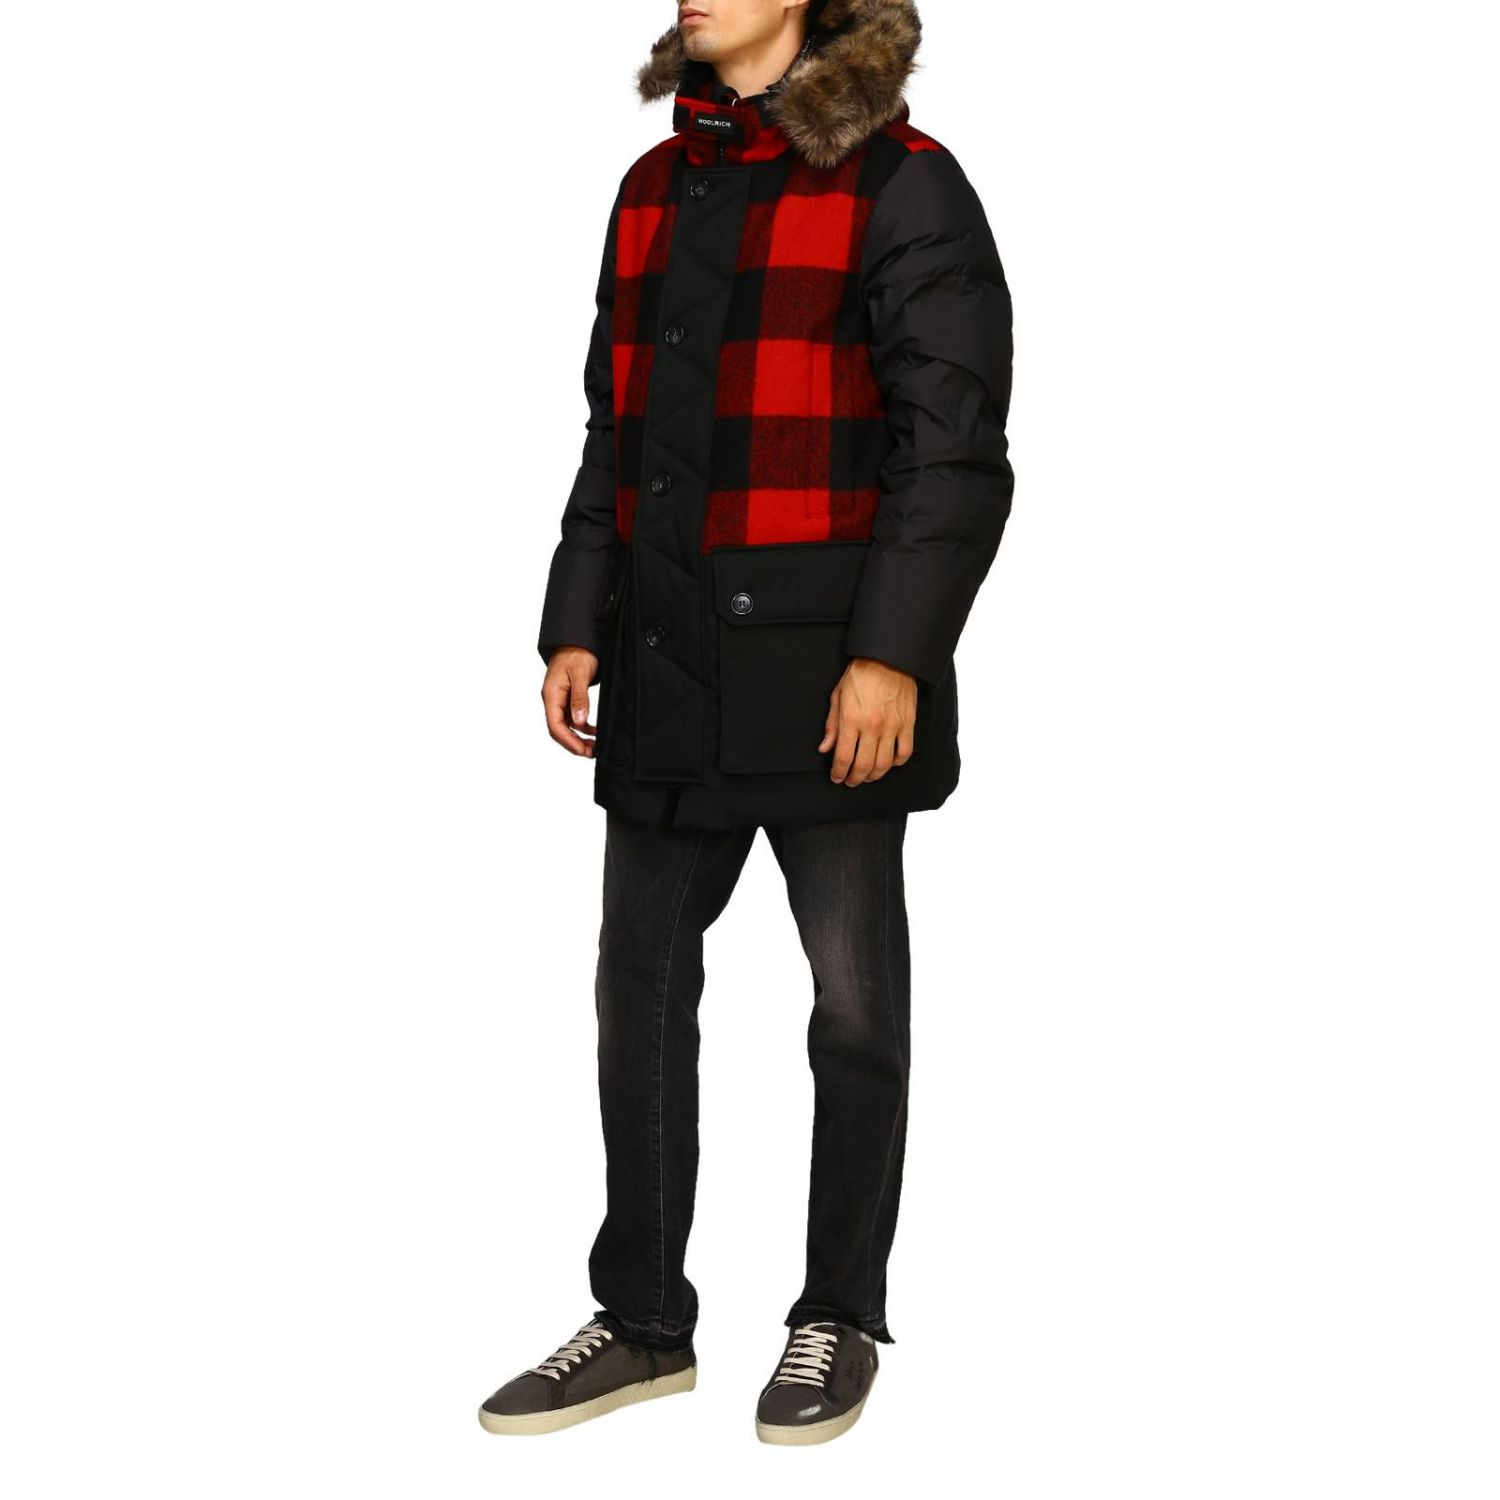 Giacca Woolrich: Giacca uomo Woolrich nero 4